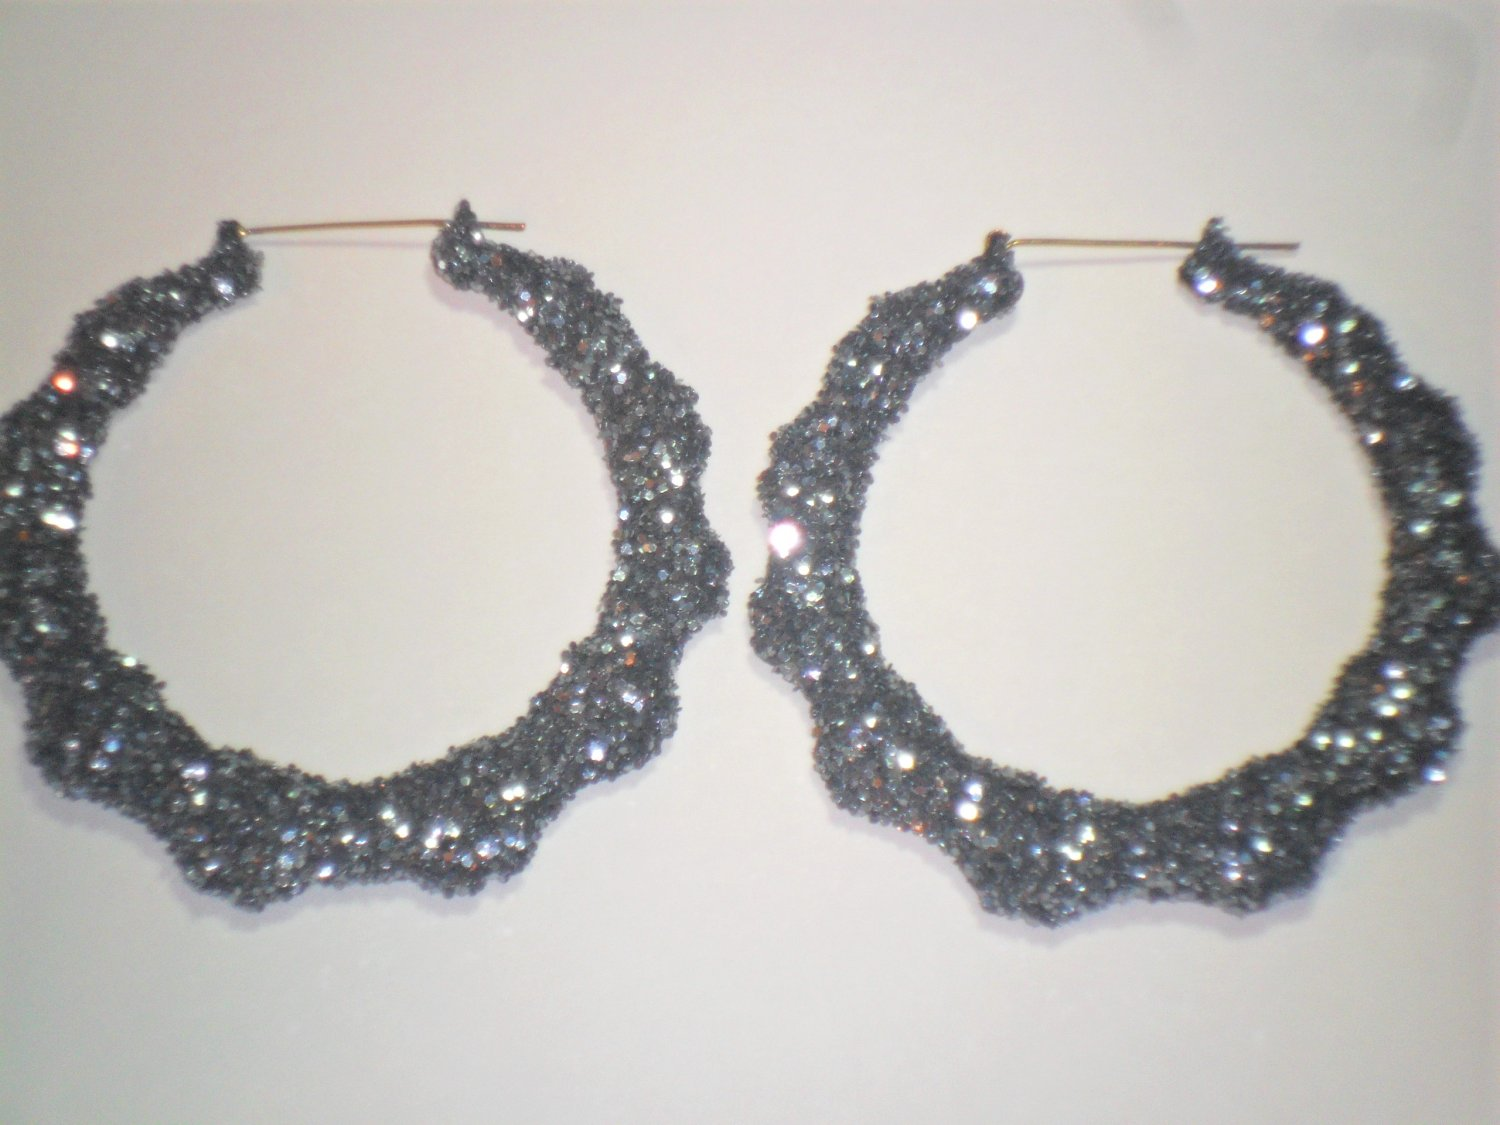 Bamboo Hoop Bling Bling Earrings Gunmetal Gray Buy 1 Get 1 Free Mix or MatchFrom TheiLLLines